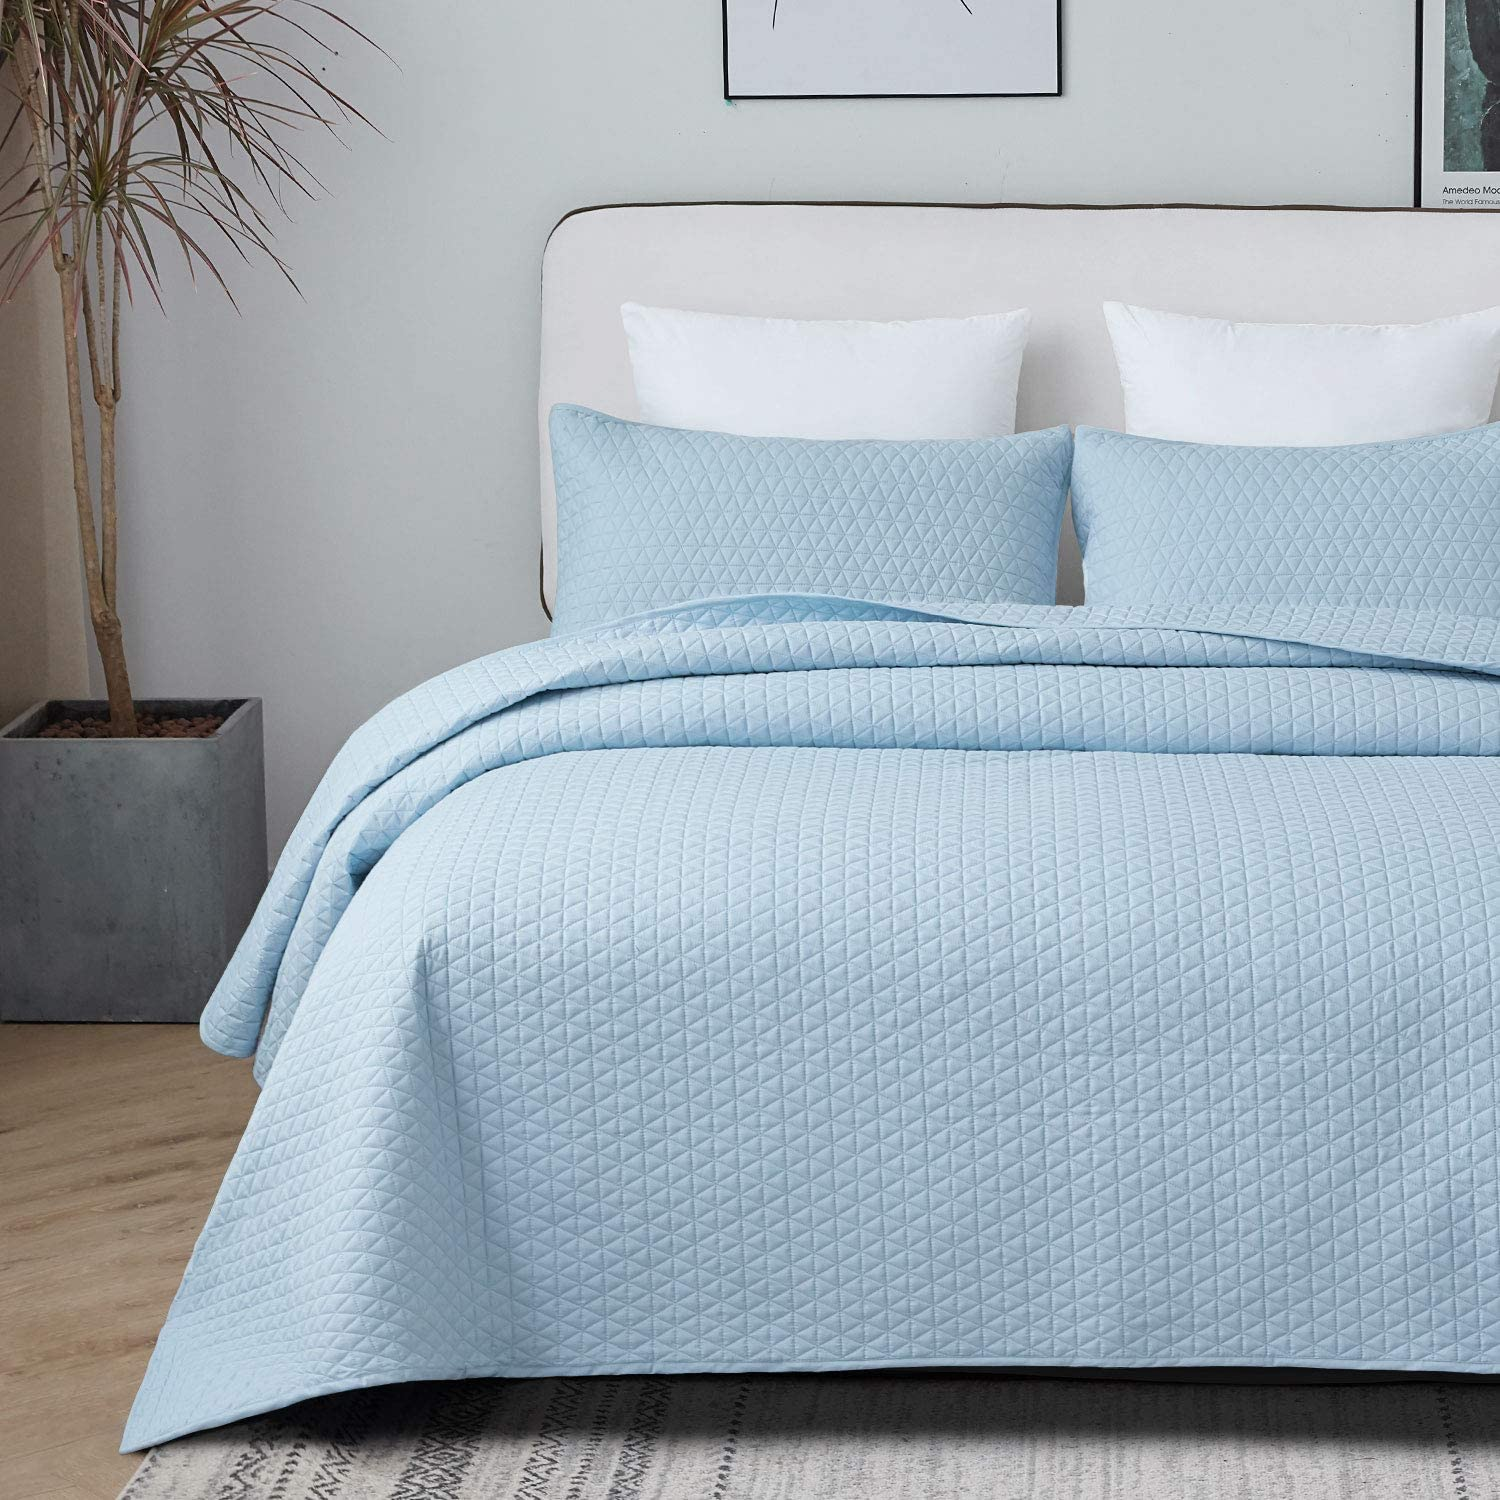 68 x 98 inches Soft Microfiber Lightweight Quilt Set Coverlet for All Seasons Breathable 2 Pieces Baby Blue Quilt Set Twin Size with Sham VEEYOO Twin Quilt Set Bedspread